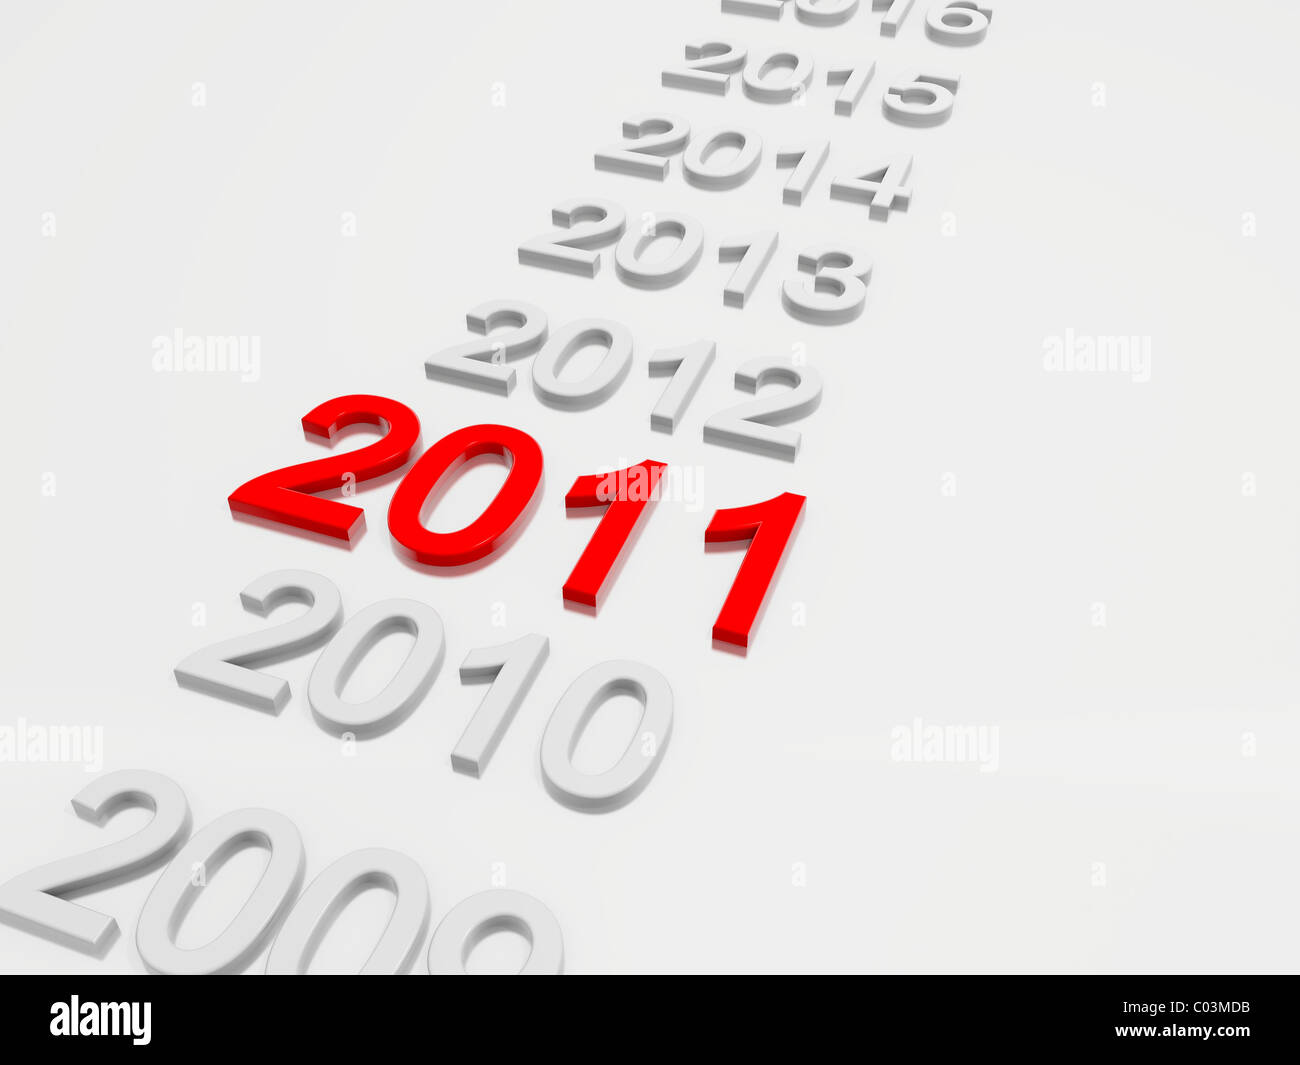 New Year 2011 in 3D - Stock Image